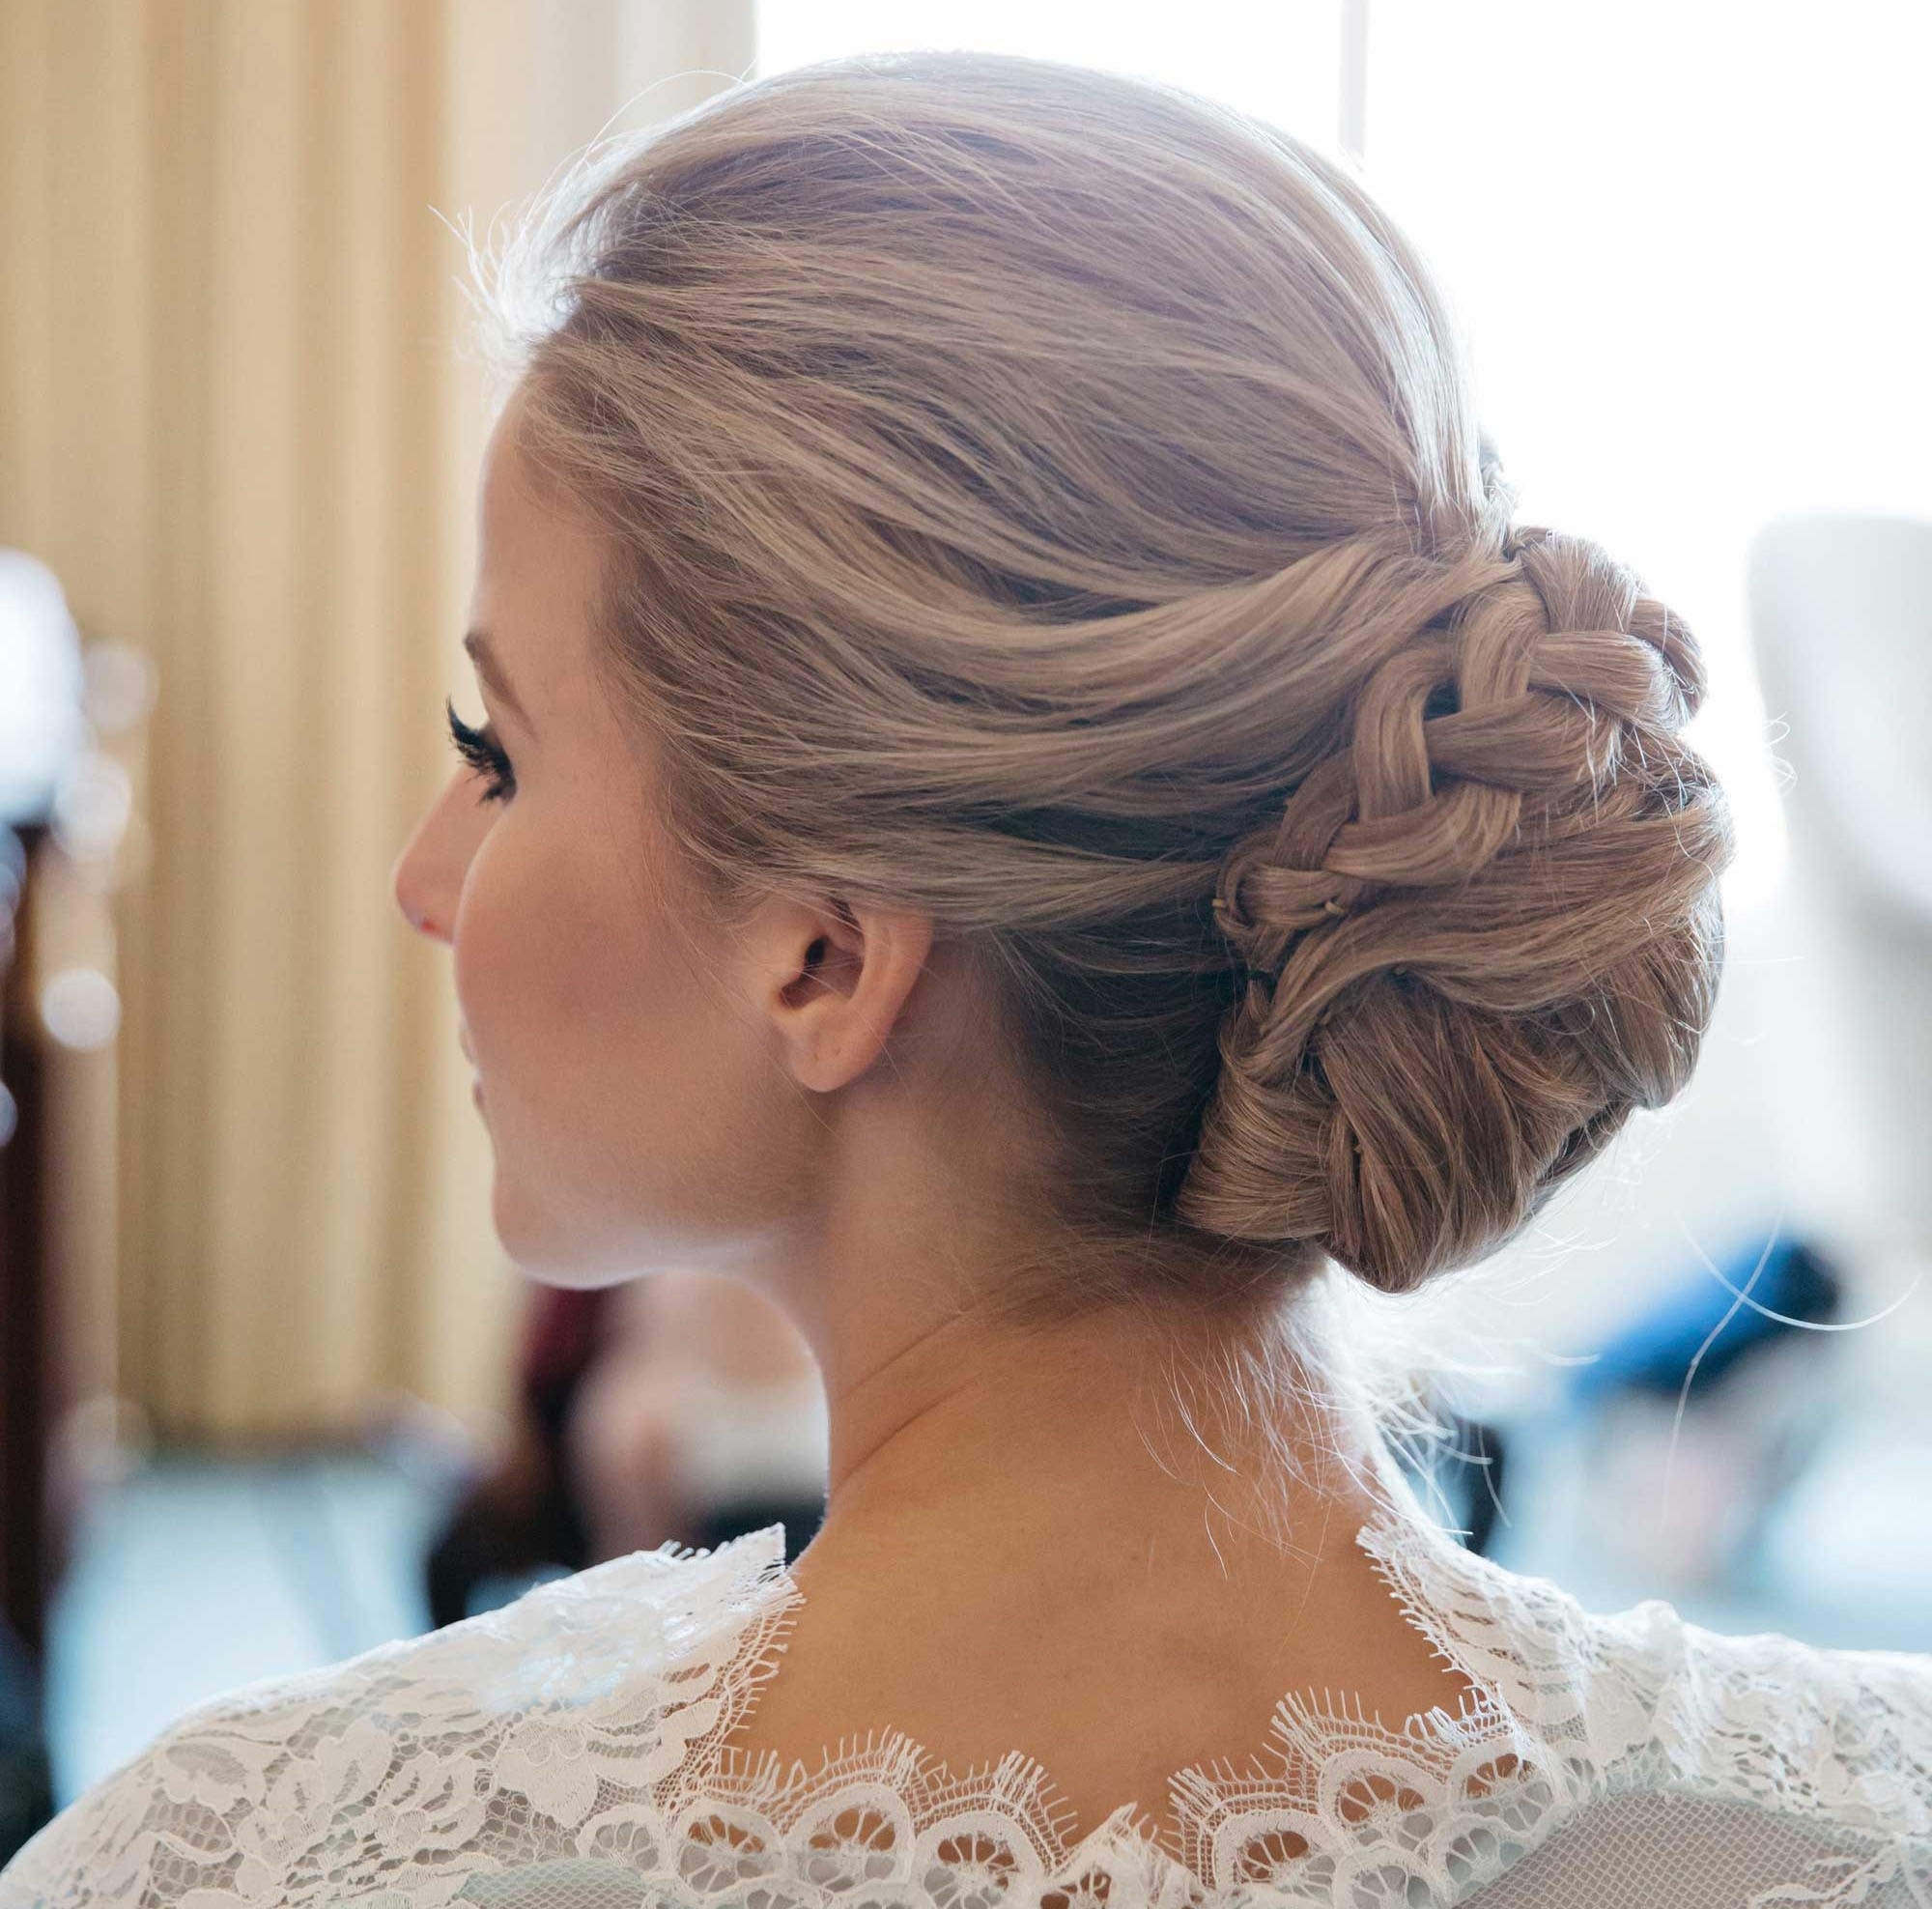 Braided Hairstyles: 5 Ideas For Your Wedding Look – Inside Weddings With Current Wedding Hairstyles For Bride (View 6 of 15)